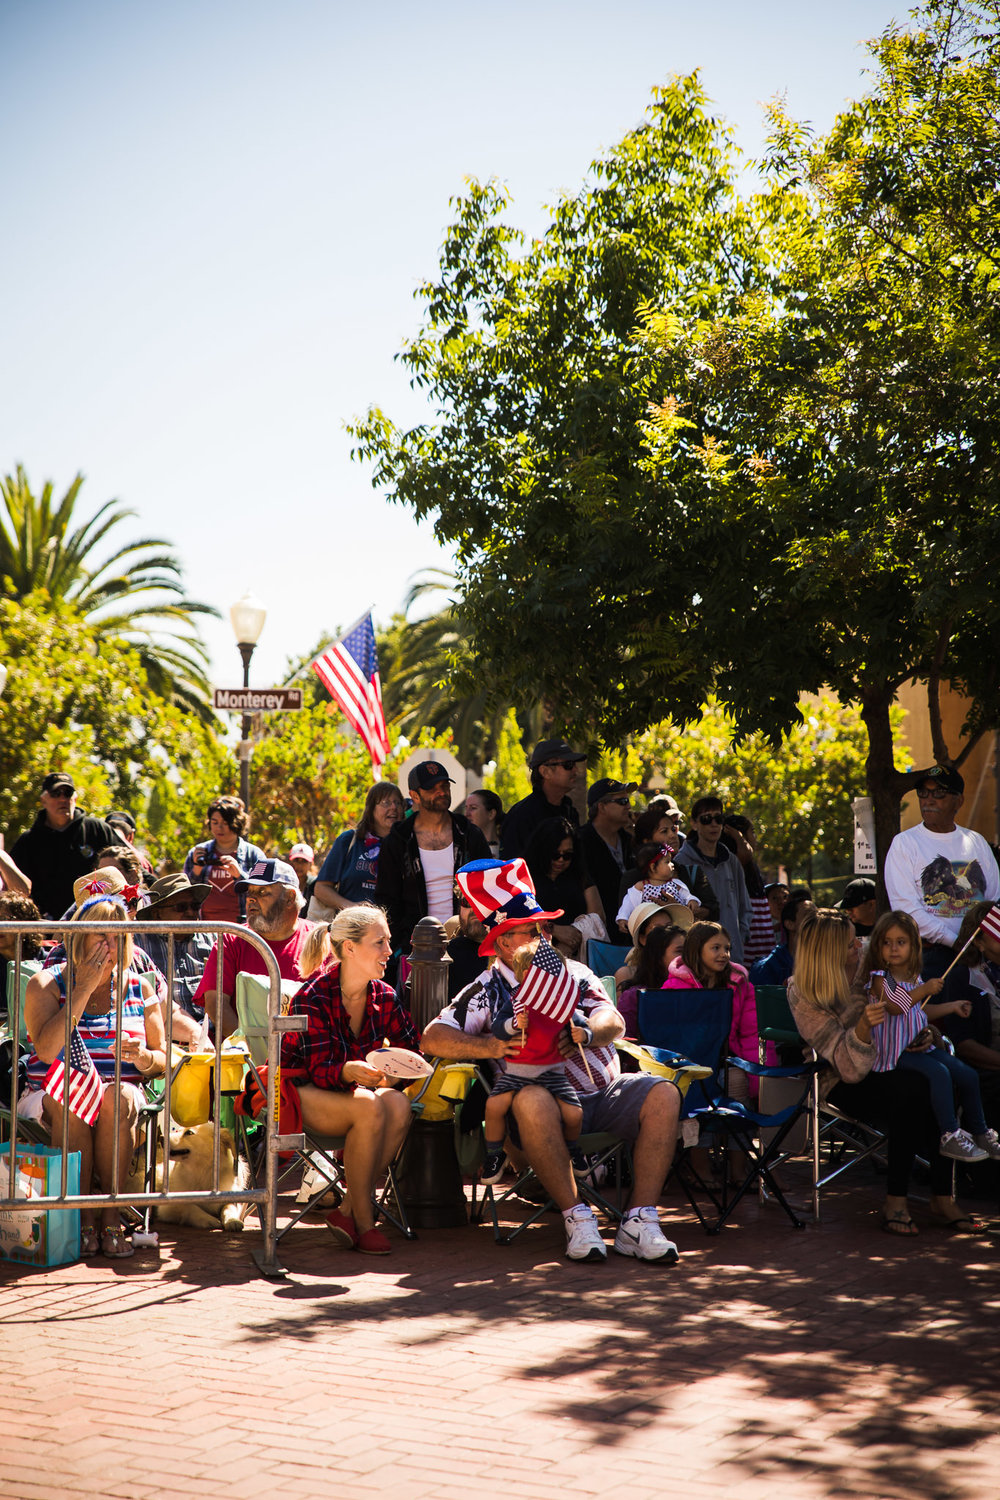 Archer_Inspired_Photography_Morgan_Hill_California_4th_of_july_parade-65.jpg